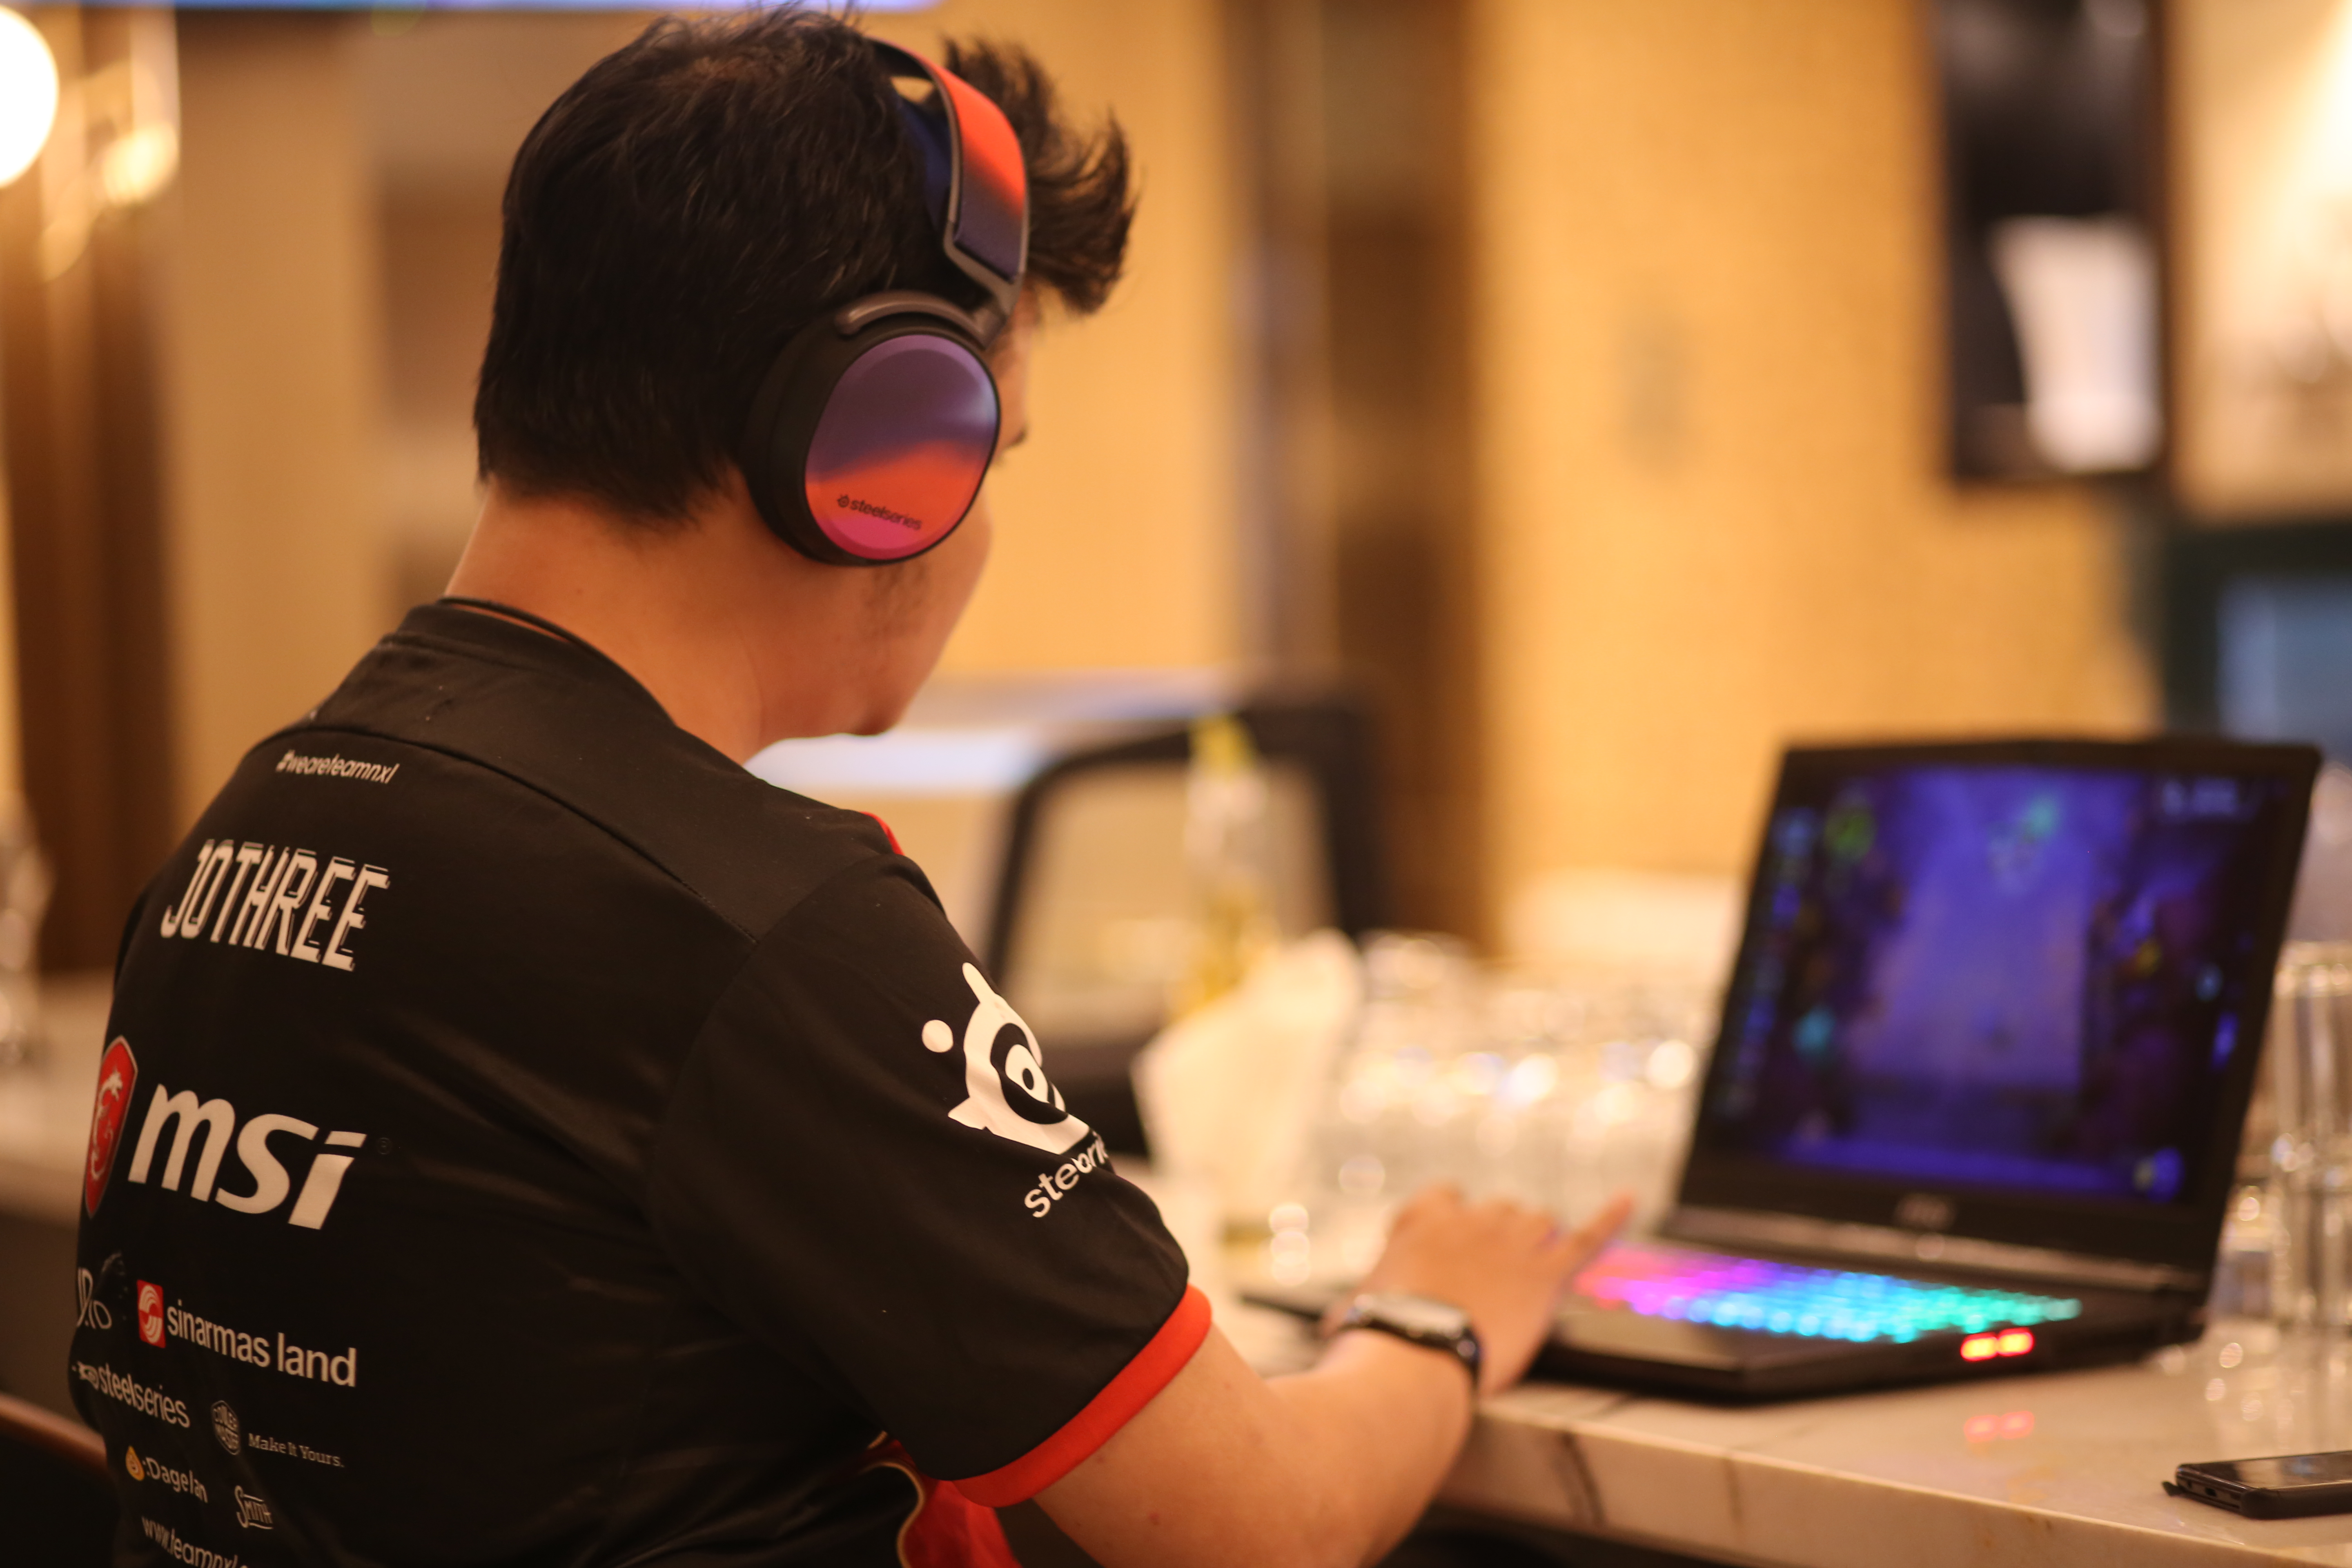 Hearthstone player Joth703 sitting at a laptop playing an unknown game and wearing a SteelSeries headset